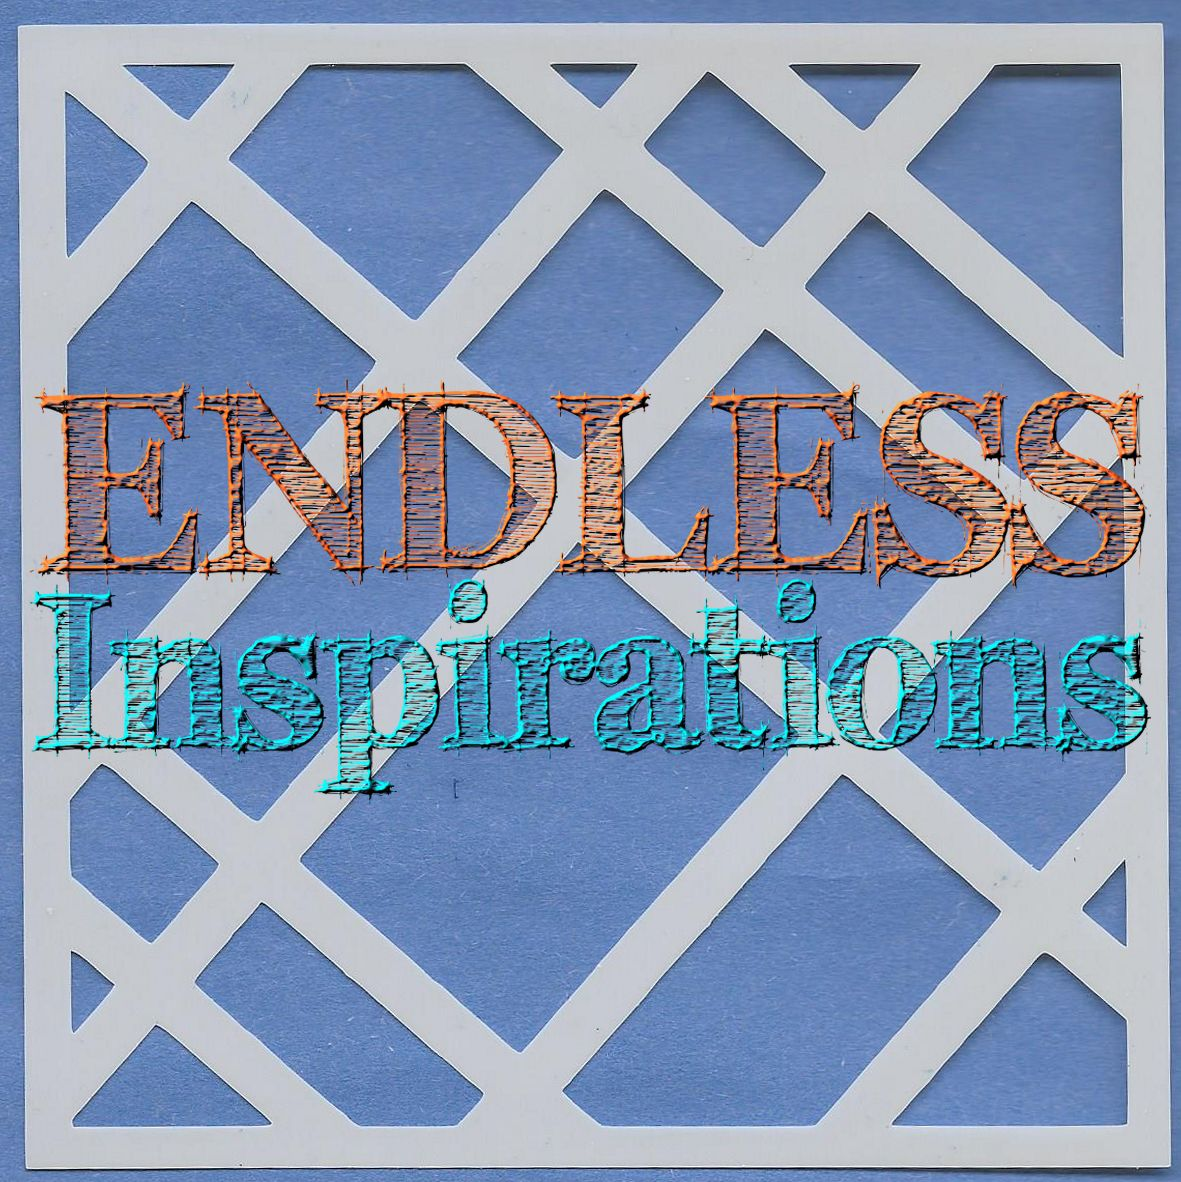 Endless Inspirations Original Stencil, 6 x 6 Inch, Lattice Fun - Redbird Inspirations